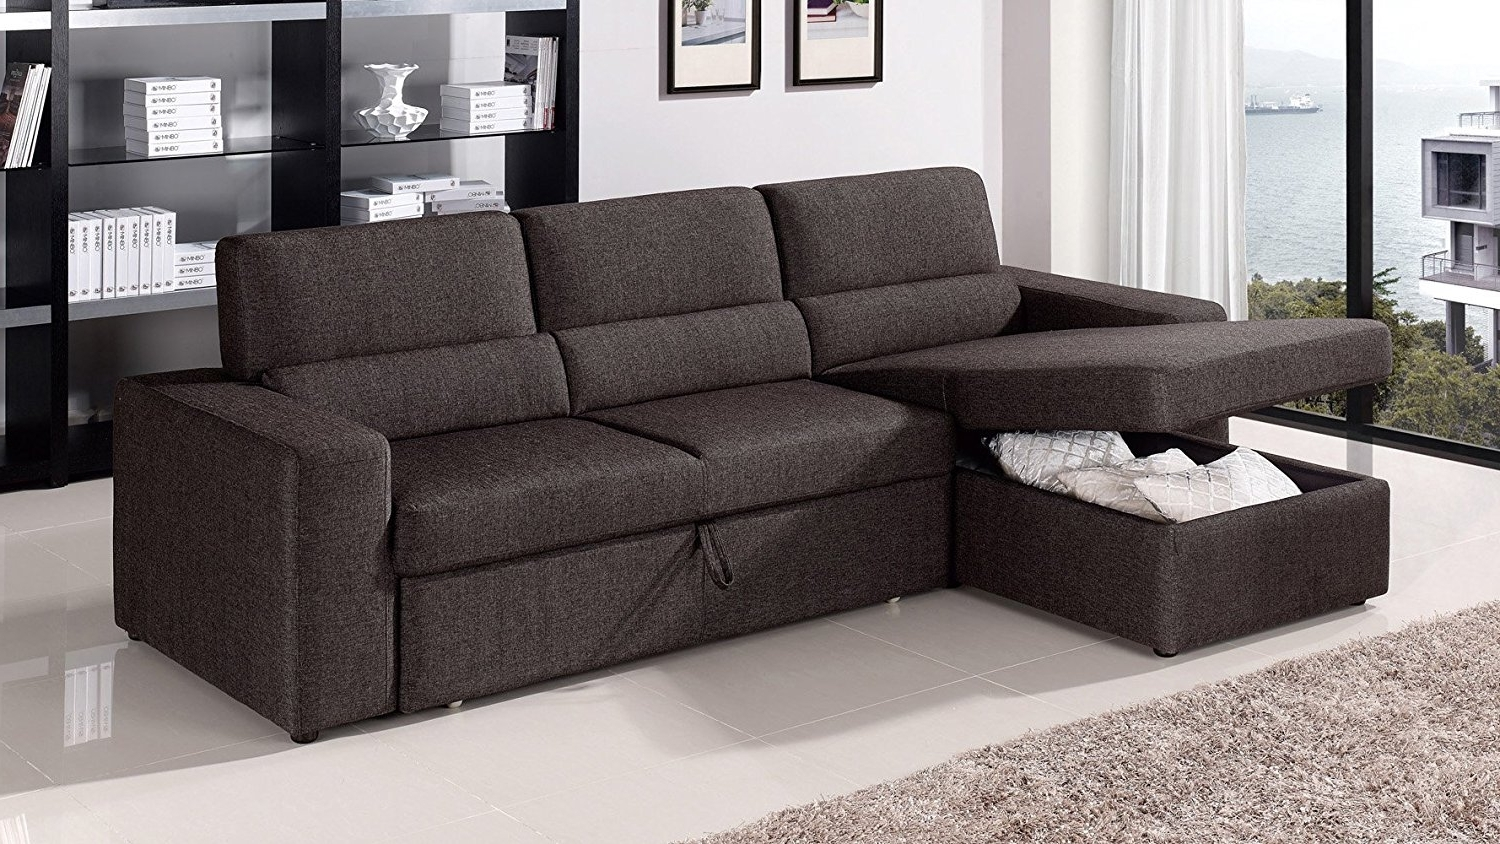 Amazon: Black/brown Clubber Sleeper Sectional Sofa – Left Inside Trendy Chaise Sofas (View 15 of 15)